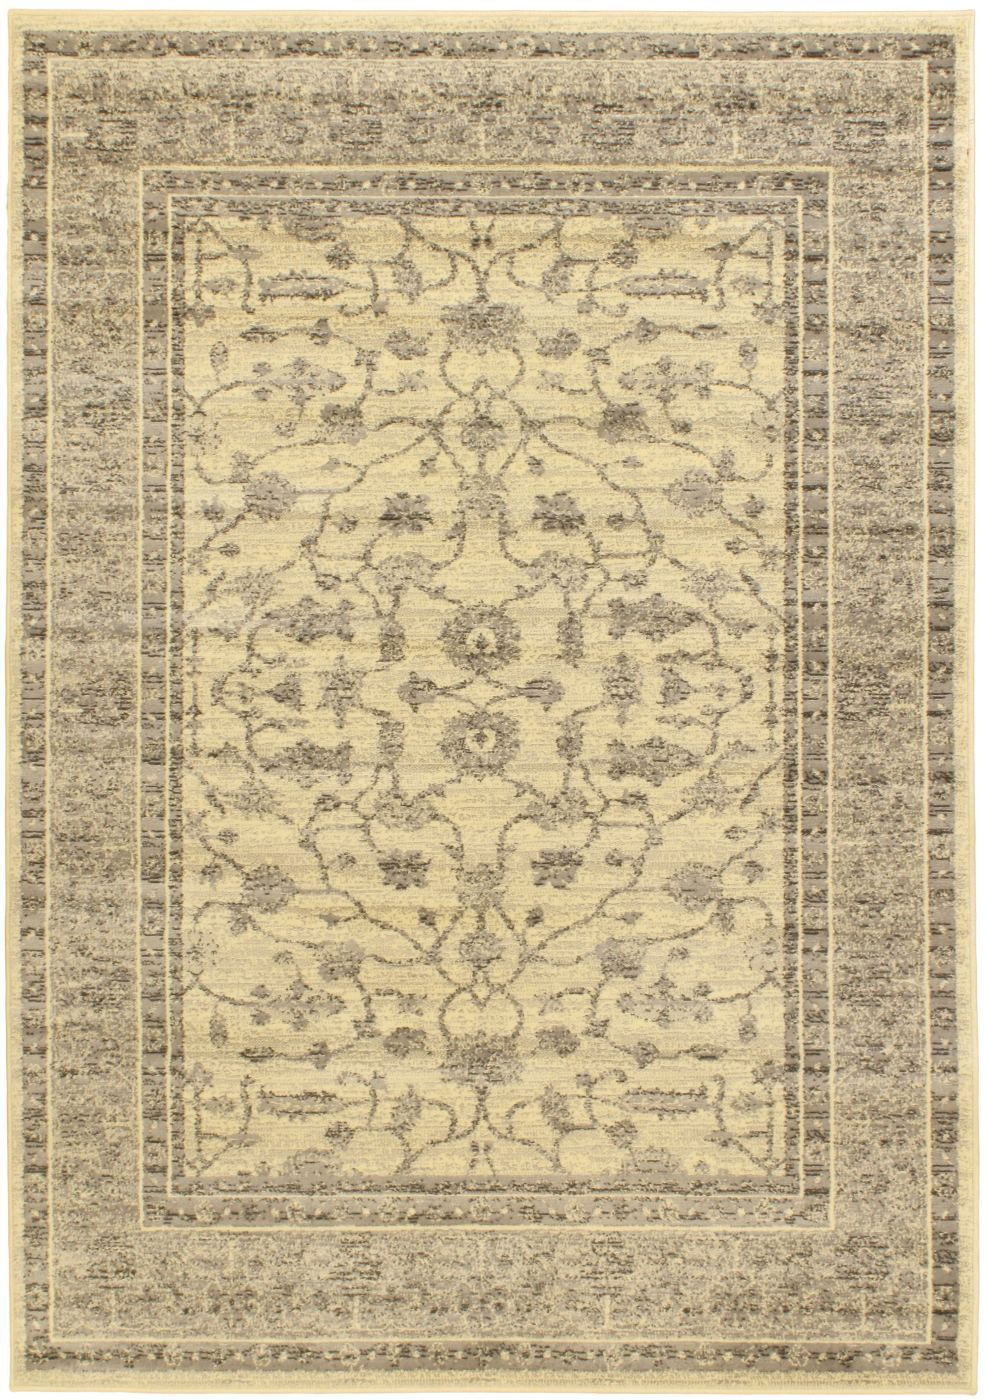 ecarpet gallery classic lotus country & floral area rug collection